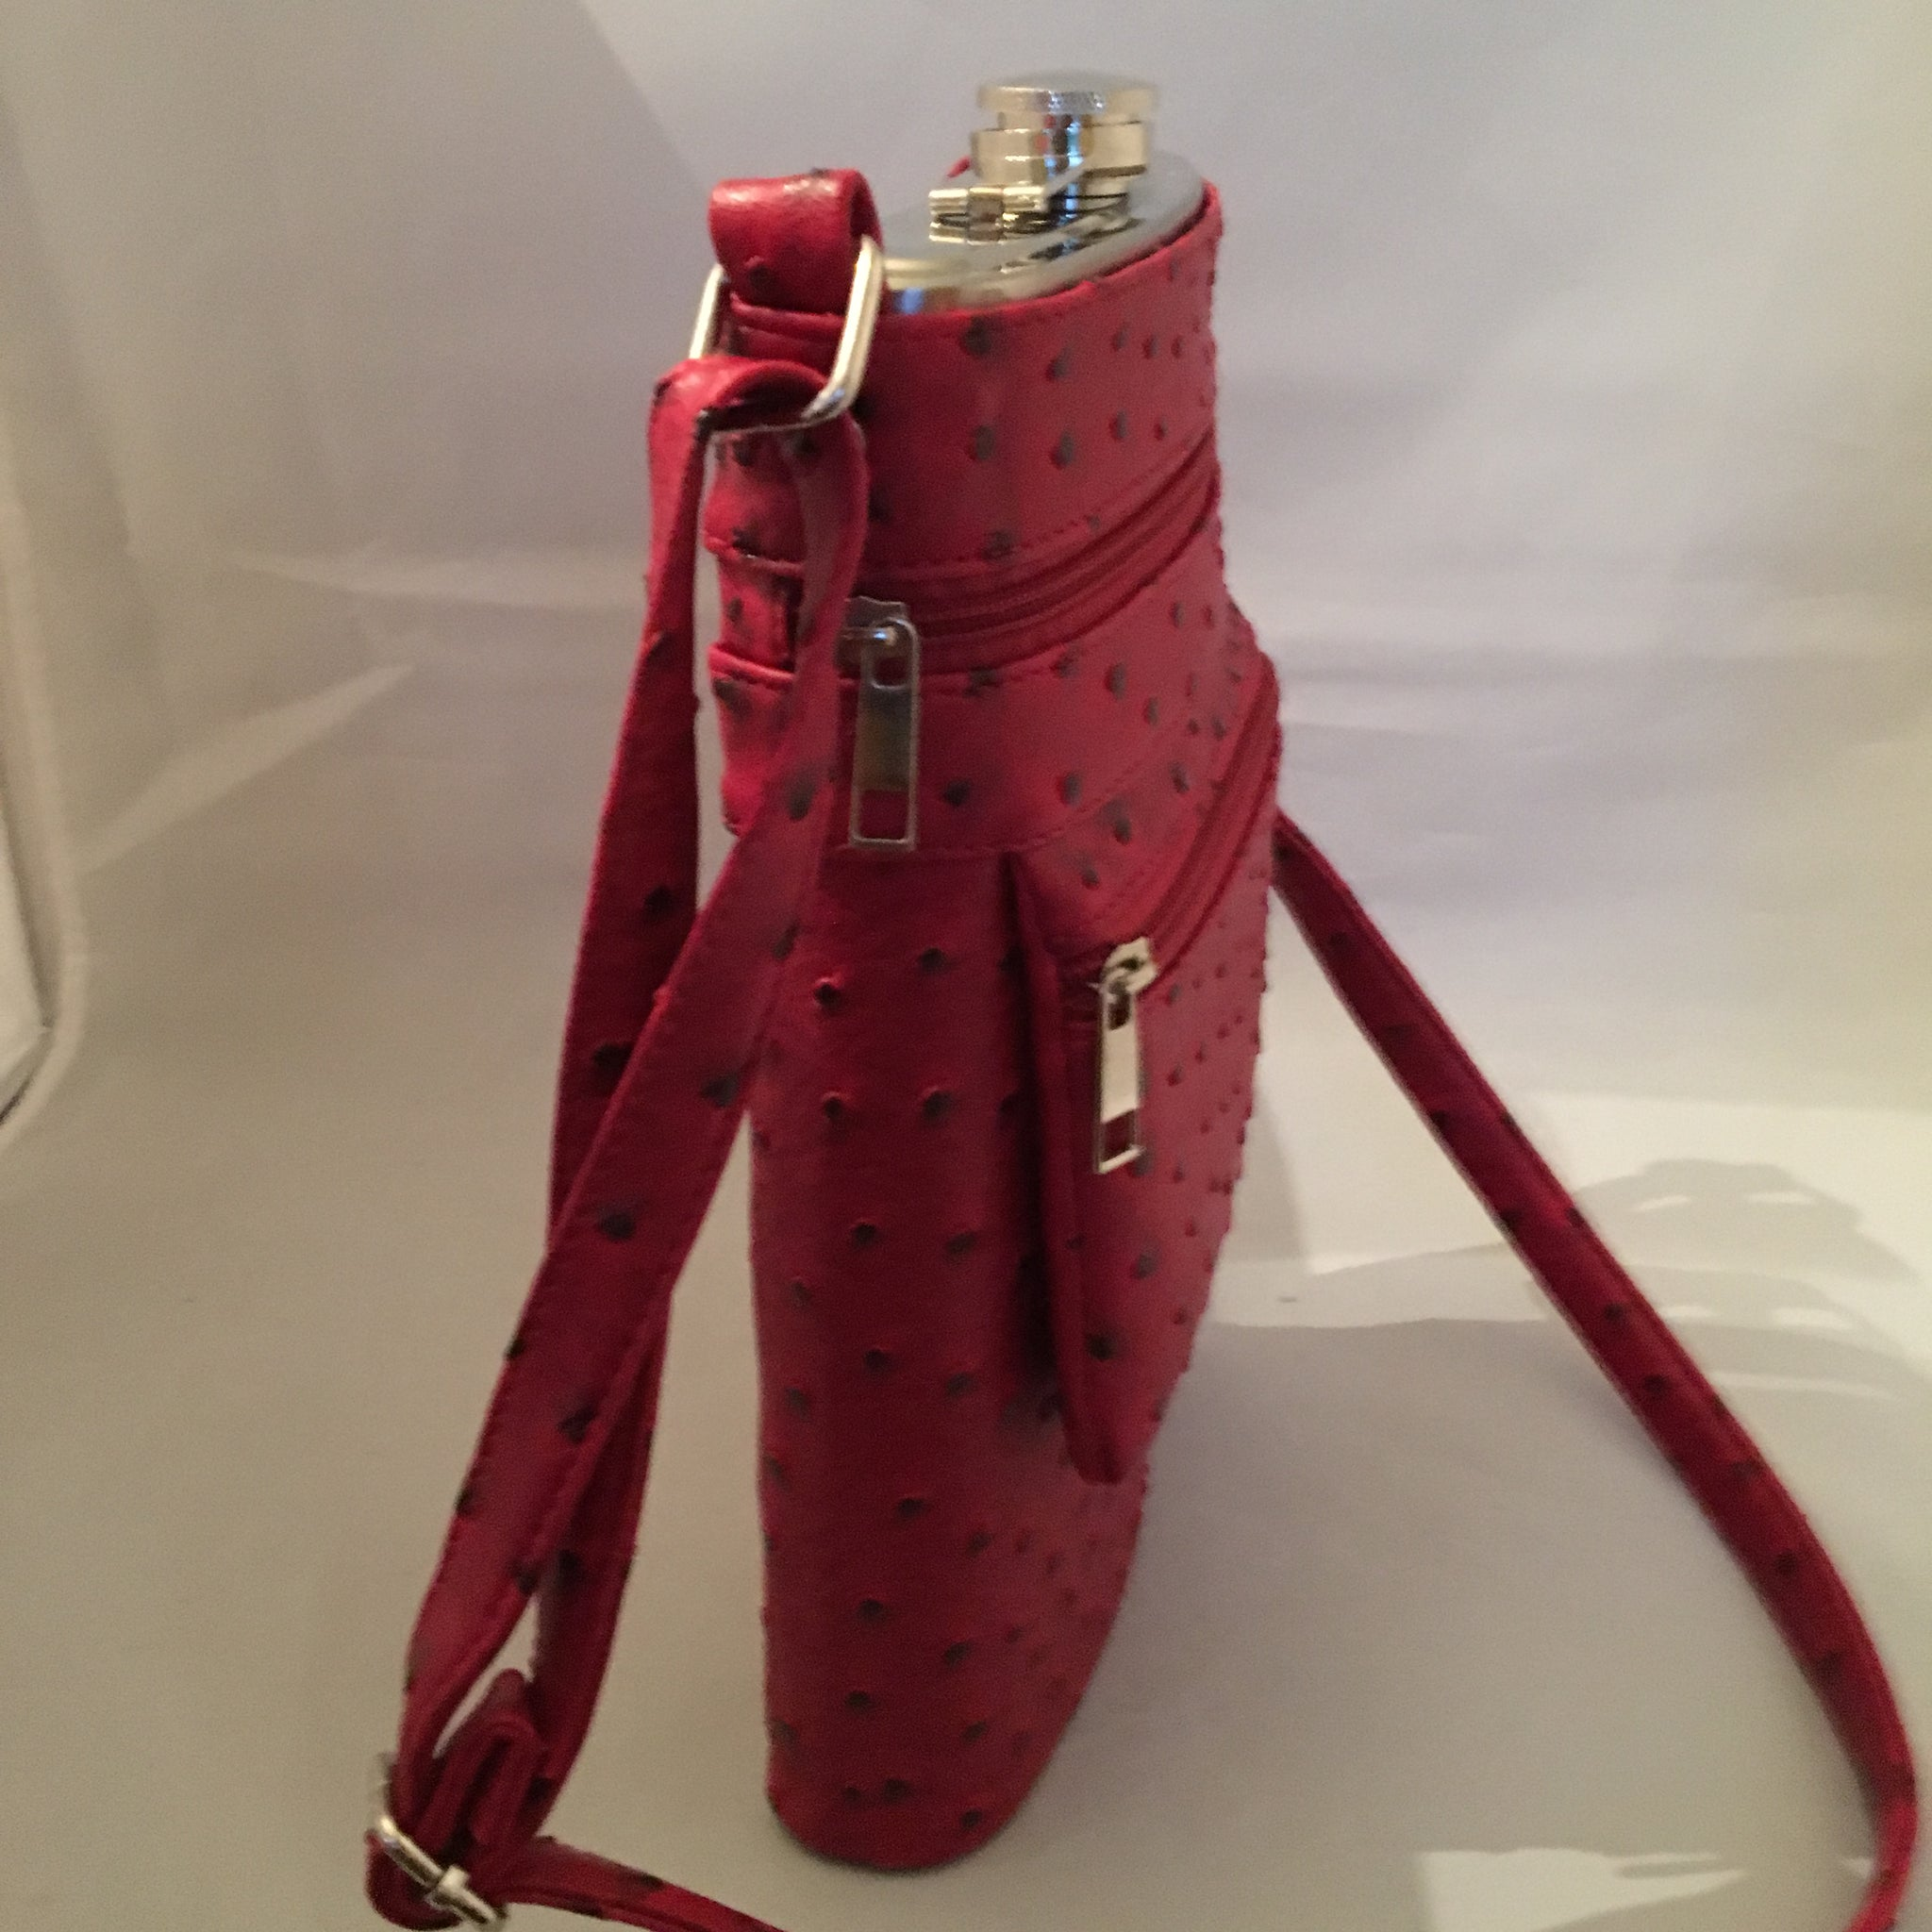 "This Ultimate Tailgate Flask discretely holds 2 bottles of wine! It's made of heavy-duty insulated aluminum, comes with its own funnel and sports a shoulder strap. You'll be the hit of the parking lot! Check to see if we have it in your school colors!  Dimensions - Height 12""; Width 7""; Depth 2"""